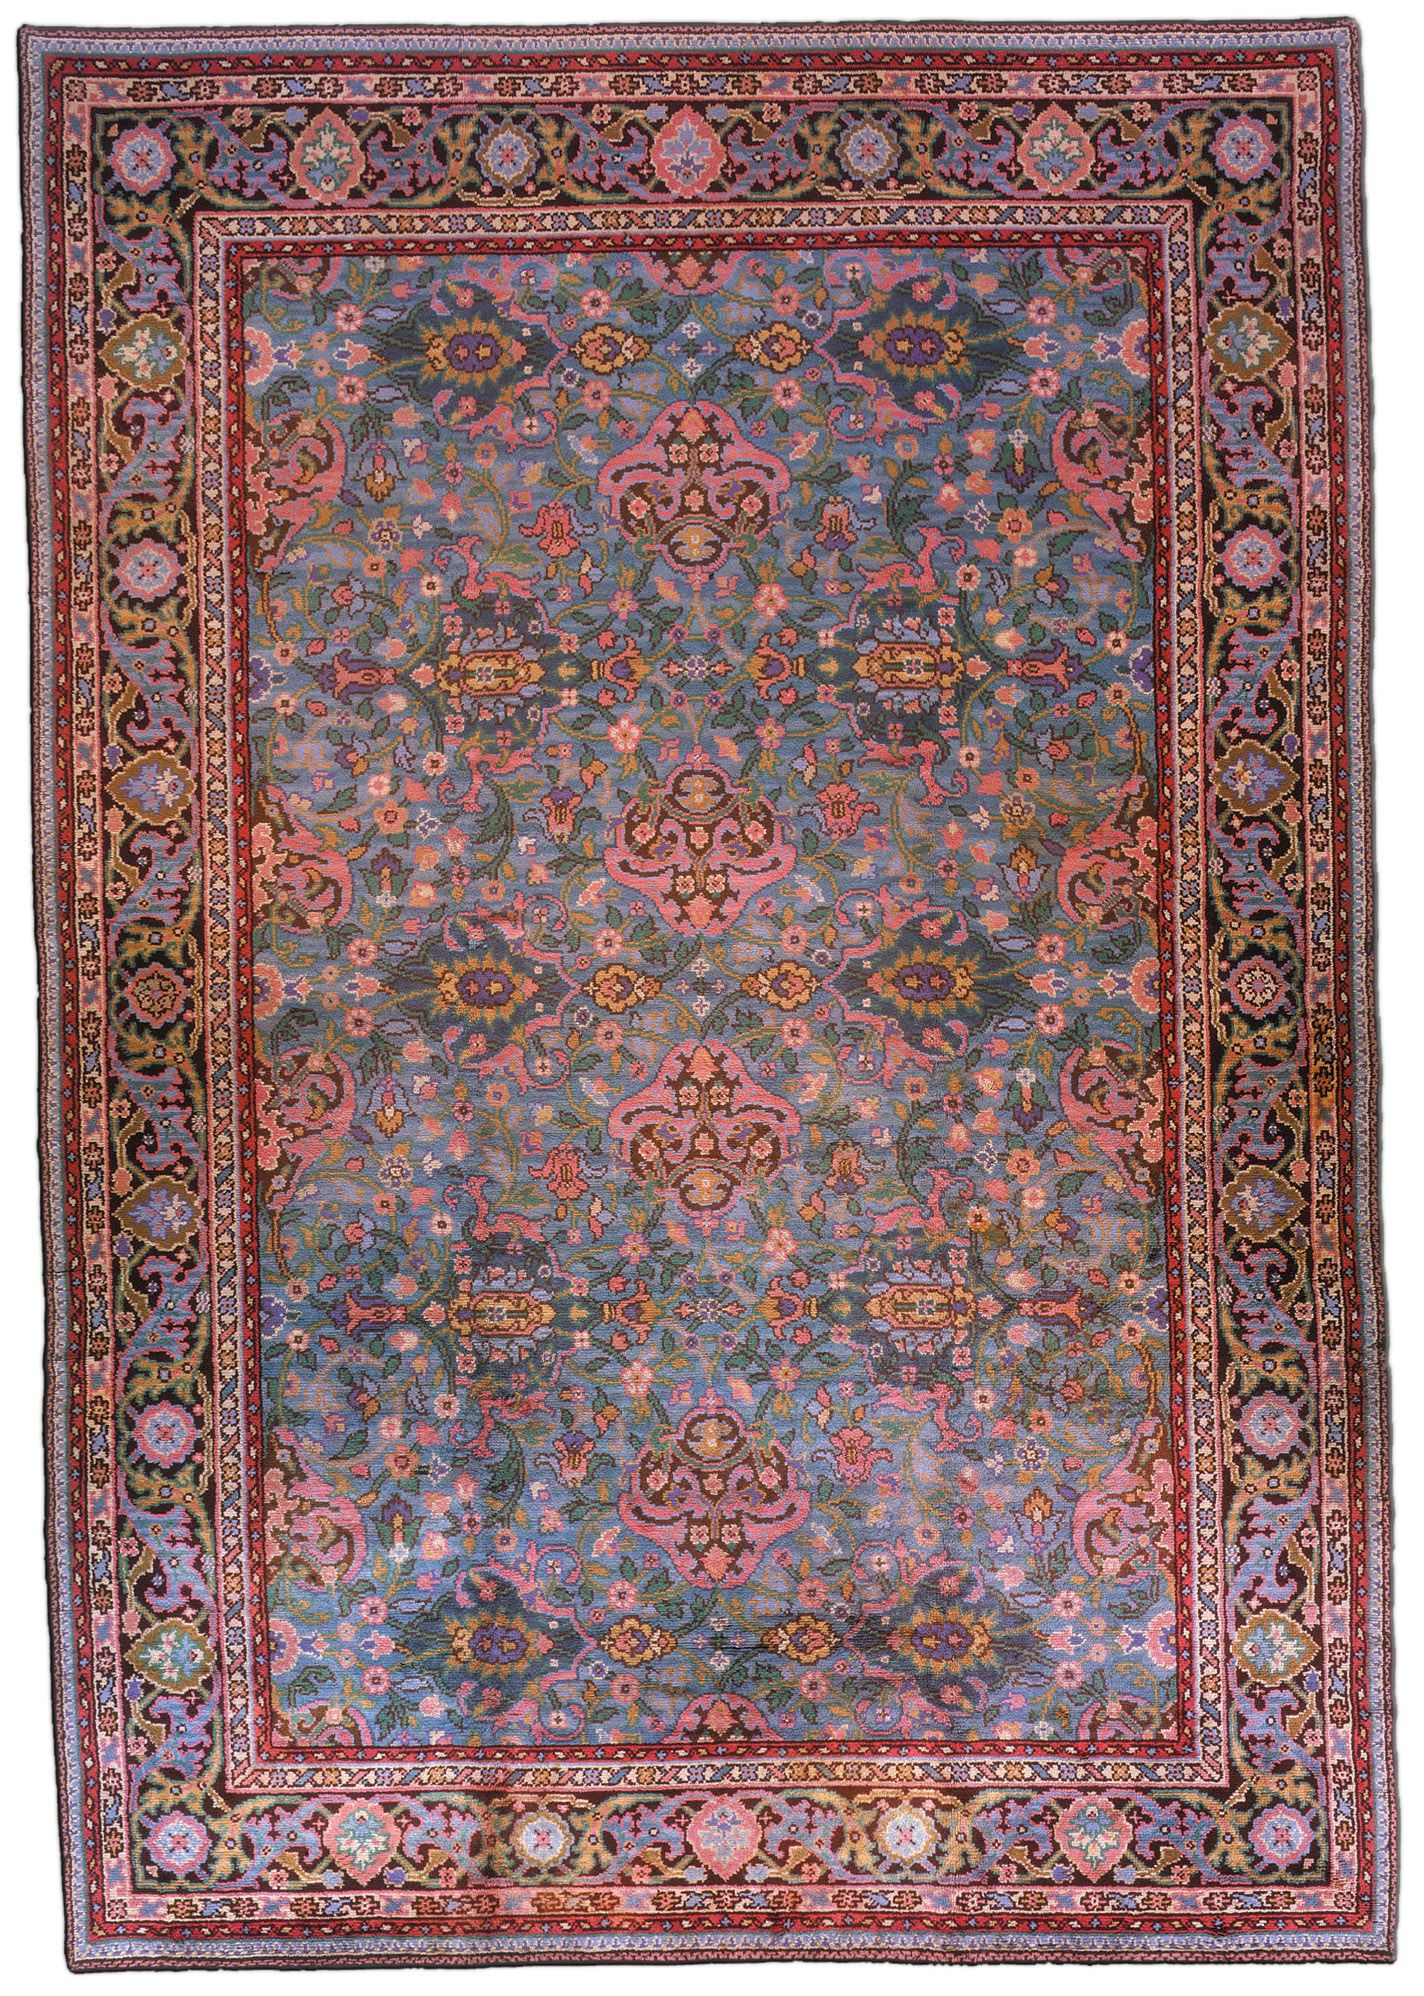 Arts And Crafts Rugs Extra Large Area Rugs Vintage Rugs Carpet Sale